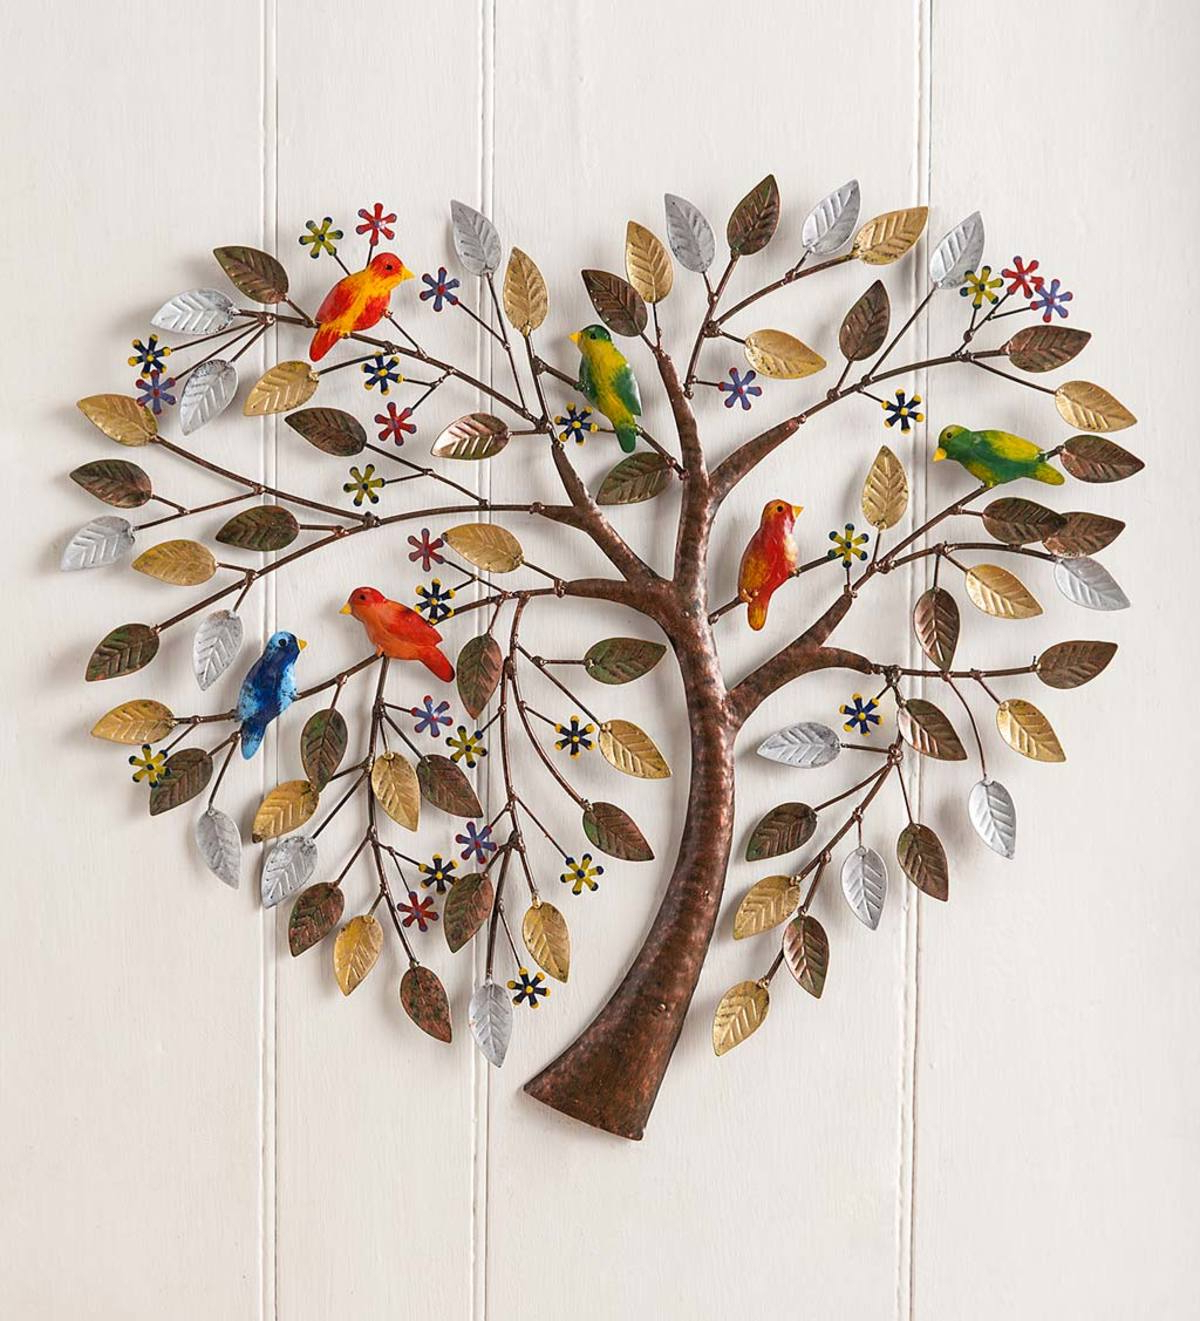 Handcrafted Metal Wall Décor Intended For Current Handcrafted Heart Tree Metal Wall Art (View 6 of 20)